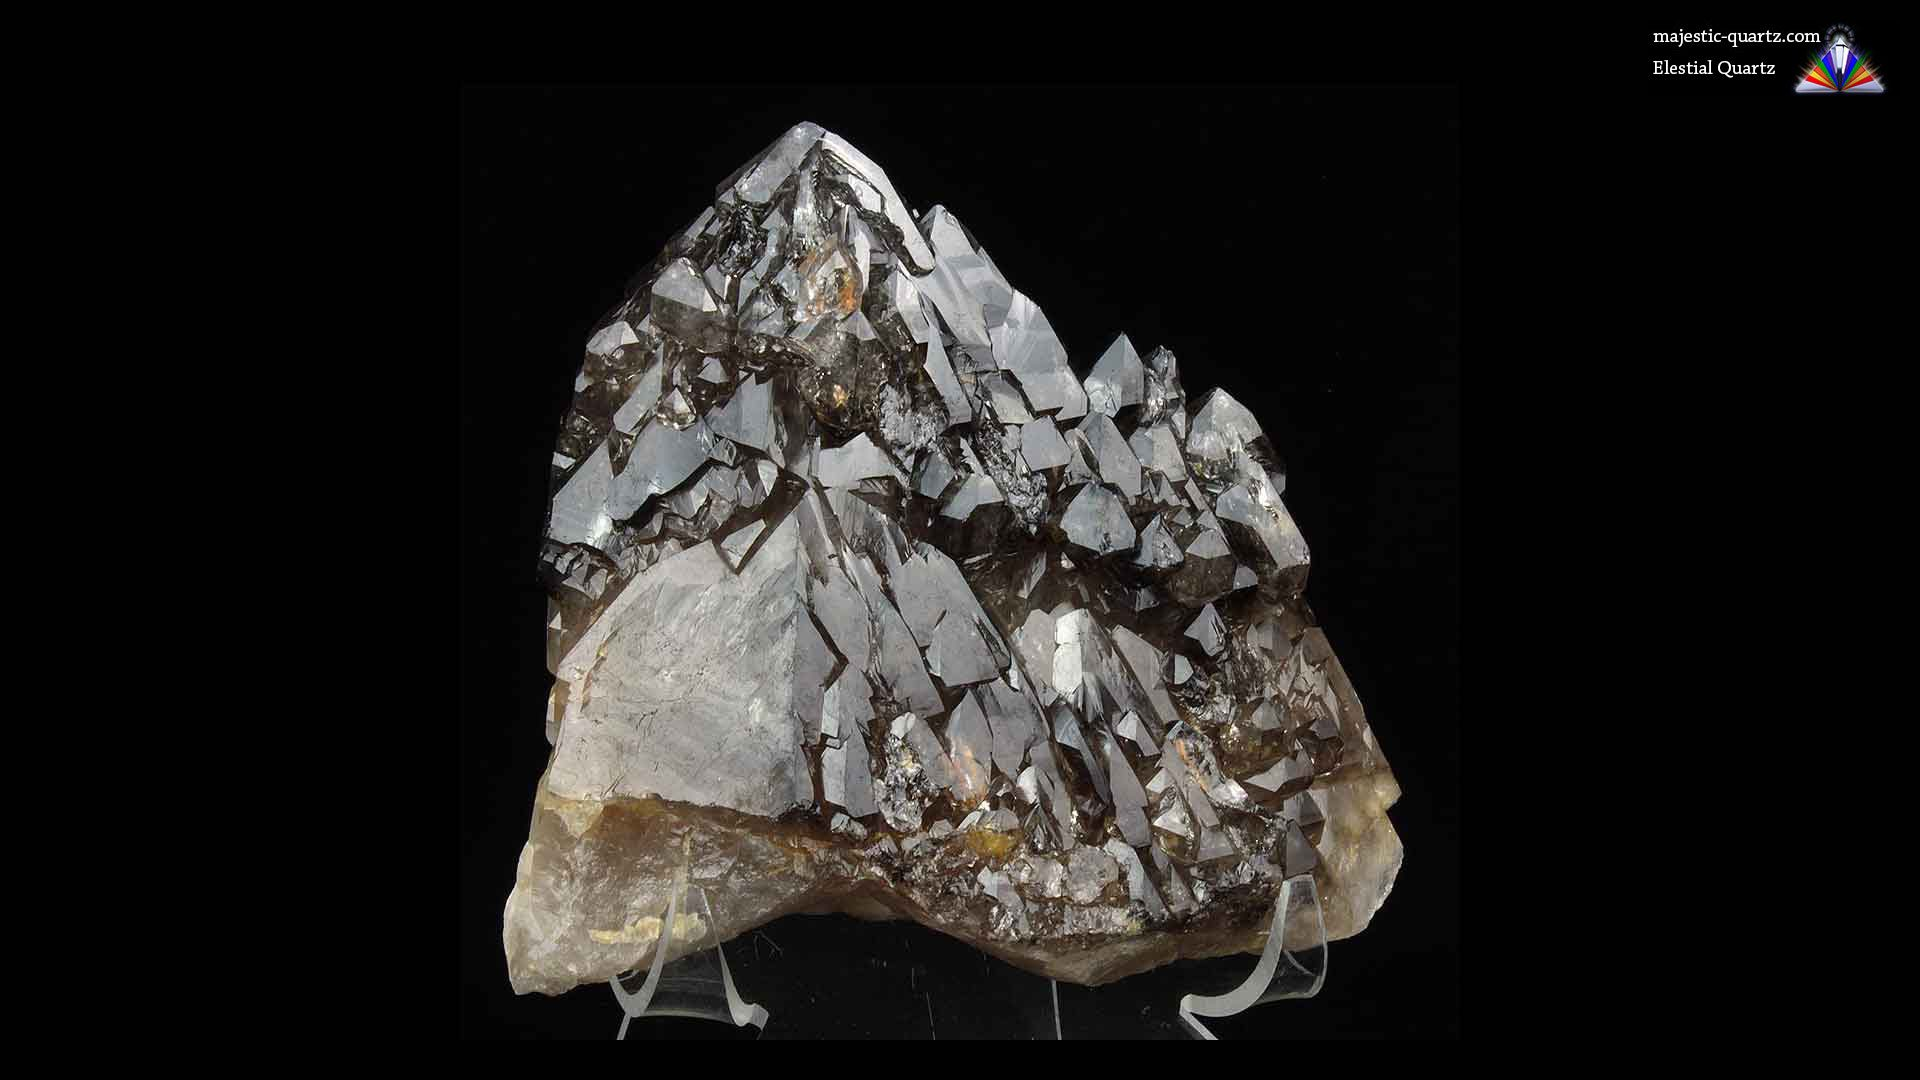 Elestial Quartz Crystal - Photograph by Anthony Bradford